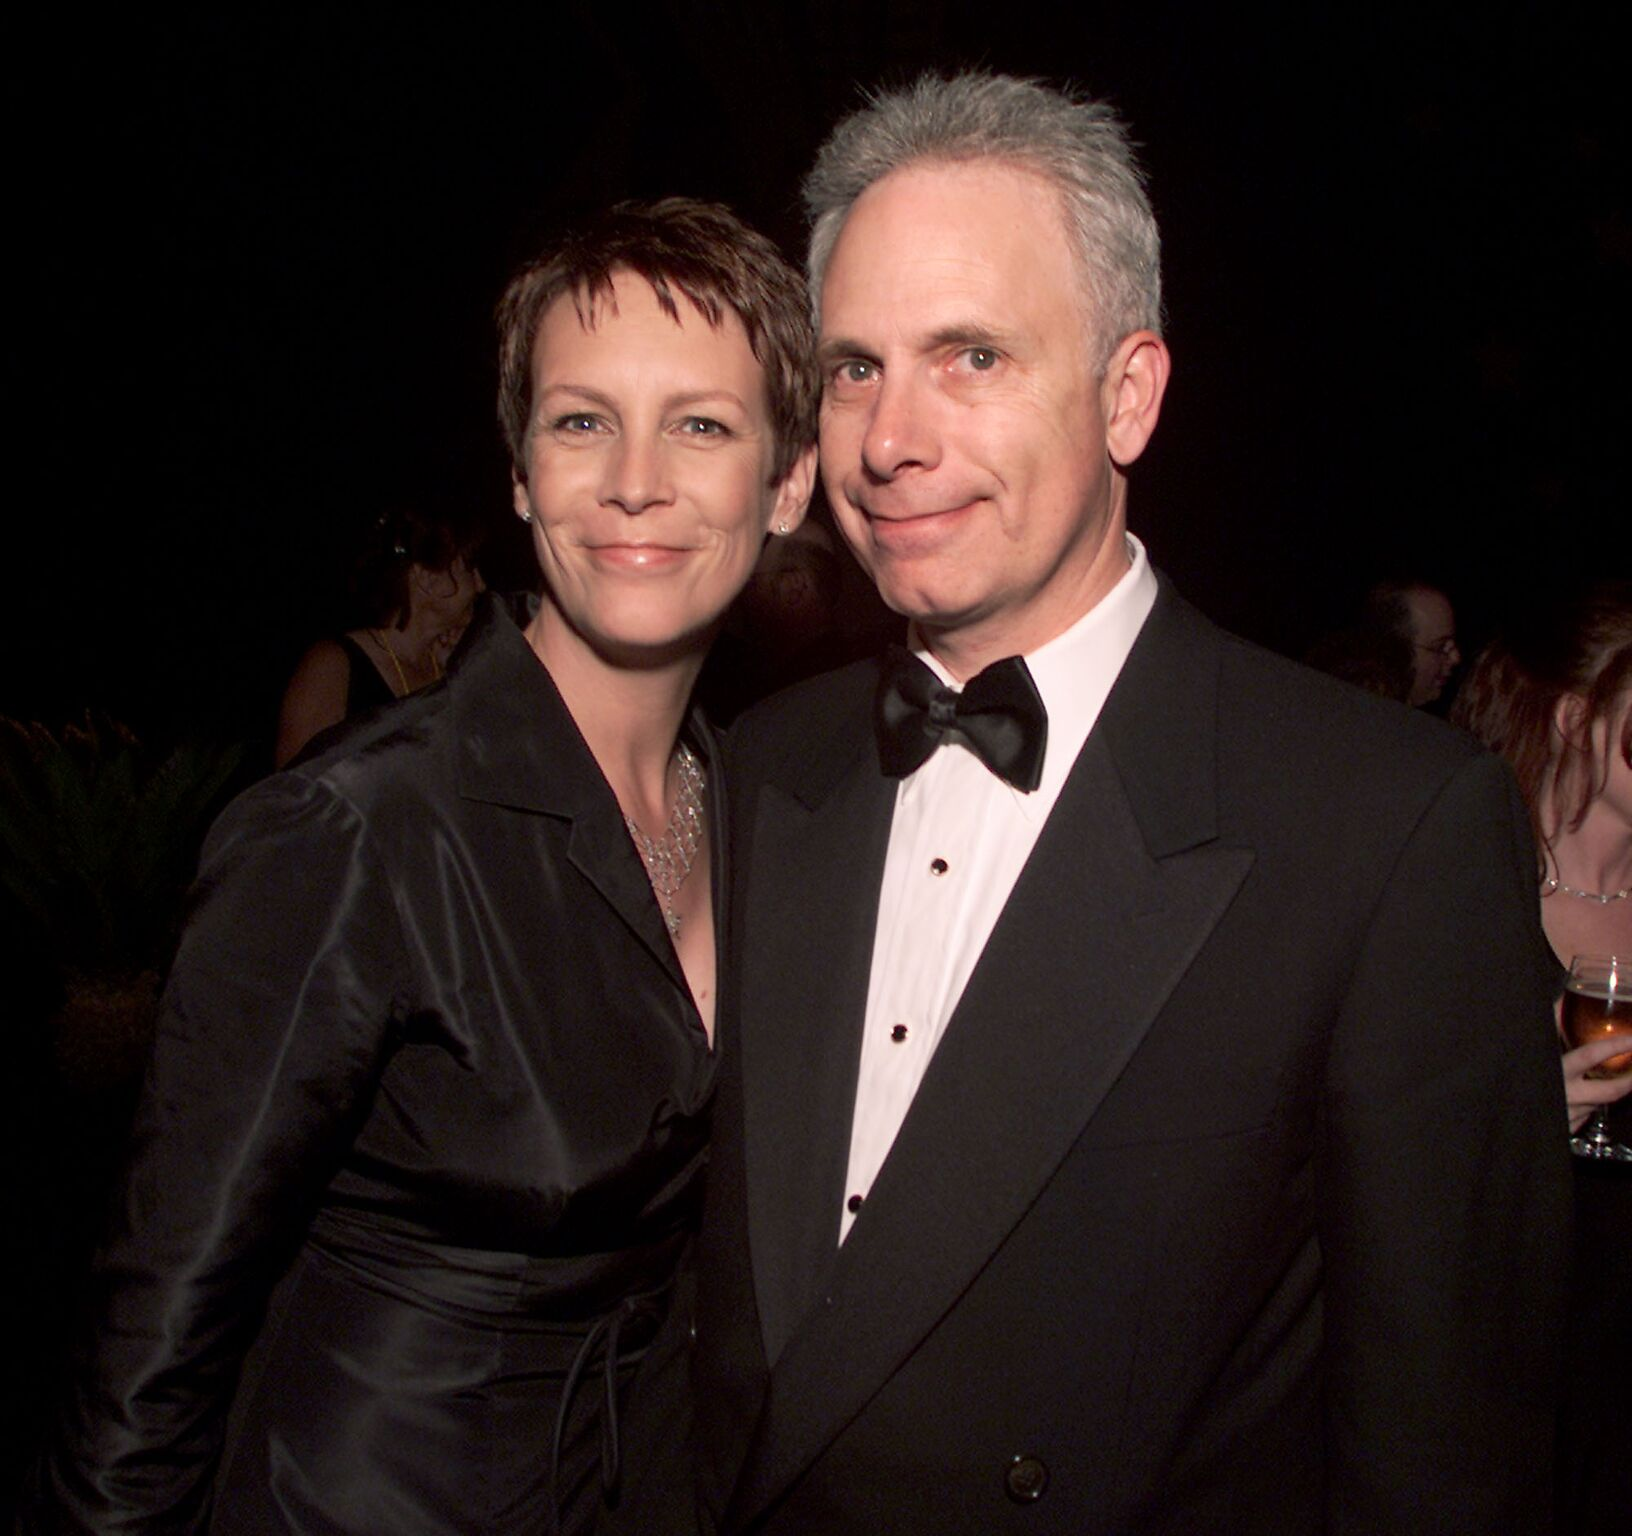 Jamie Lee Curtis and husband Christopher Guest at Comedy Central's post-party after the 15th Annual American Comedy Awards. | Source: Getty Images